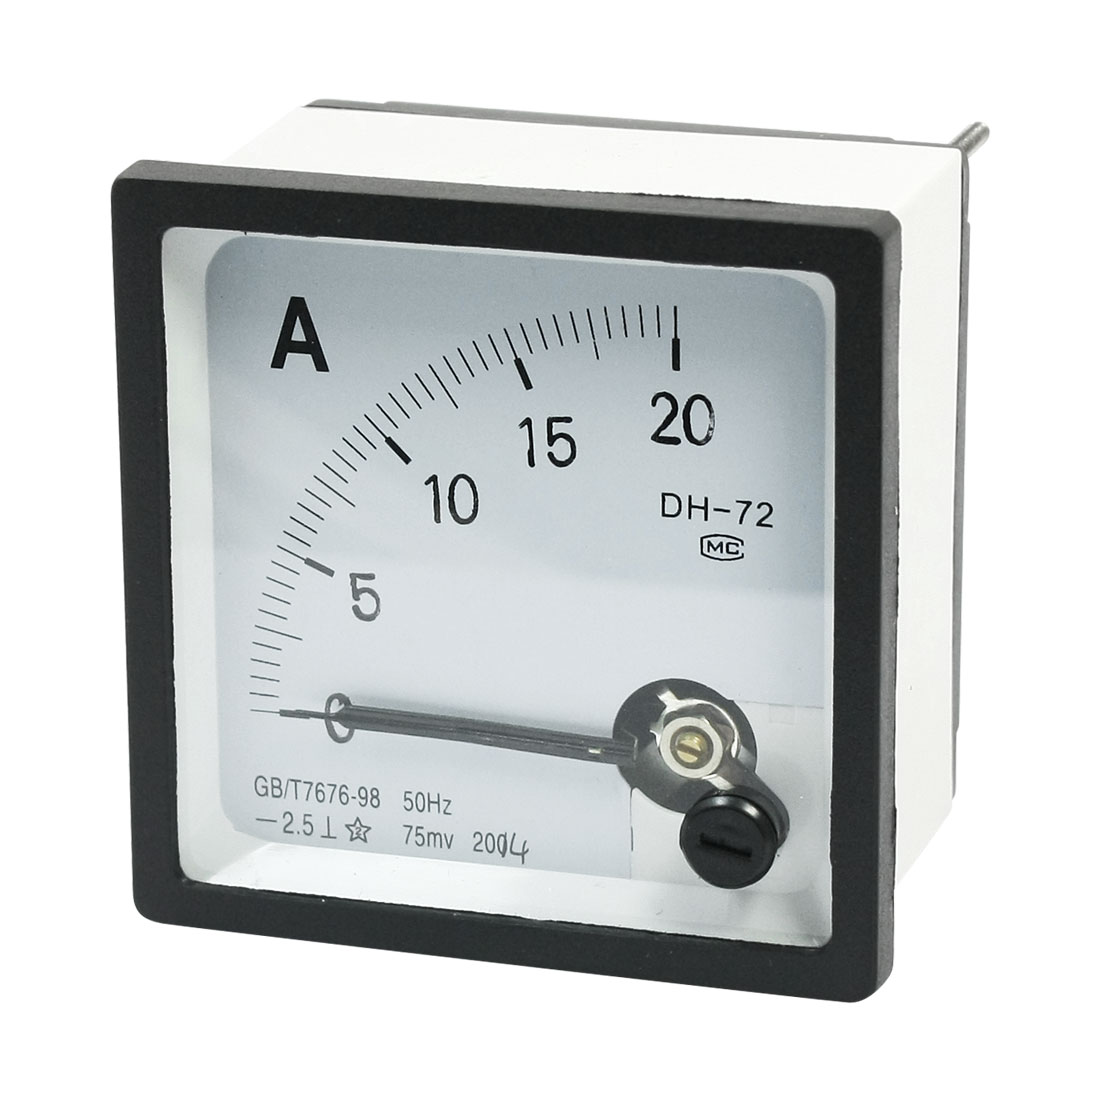 DC 0-20A Measuring Range Class 2.5 Accuracy Panel Mounting Rectangle Current Testing Analog Ammeter Ampere Meter DH-72 for for School Lab